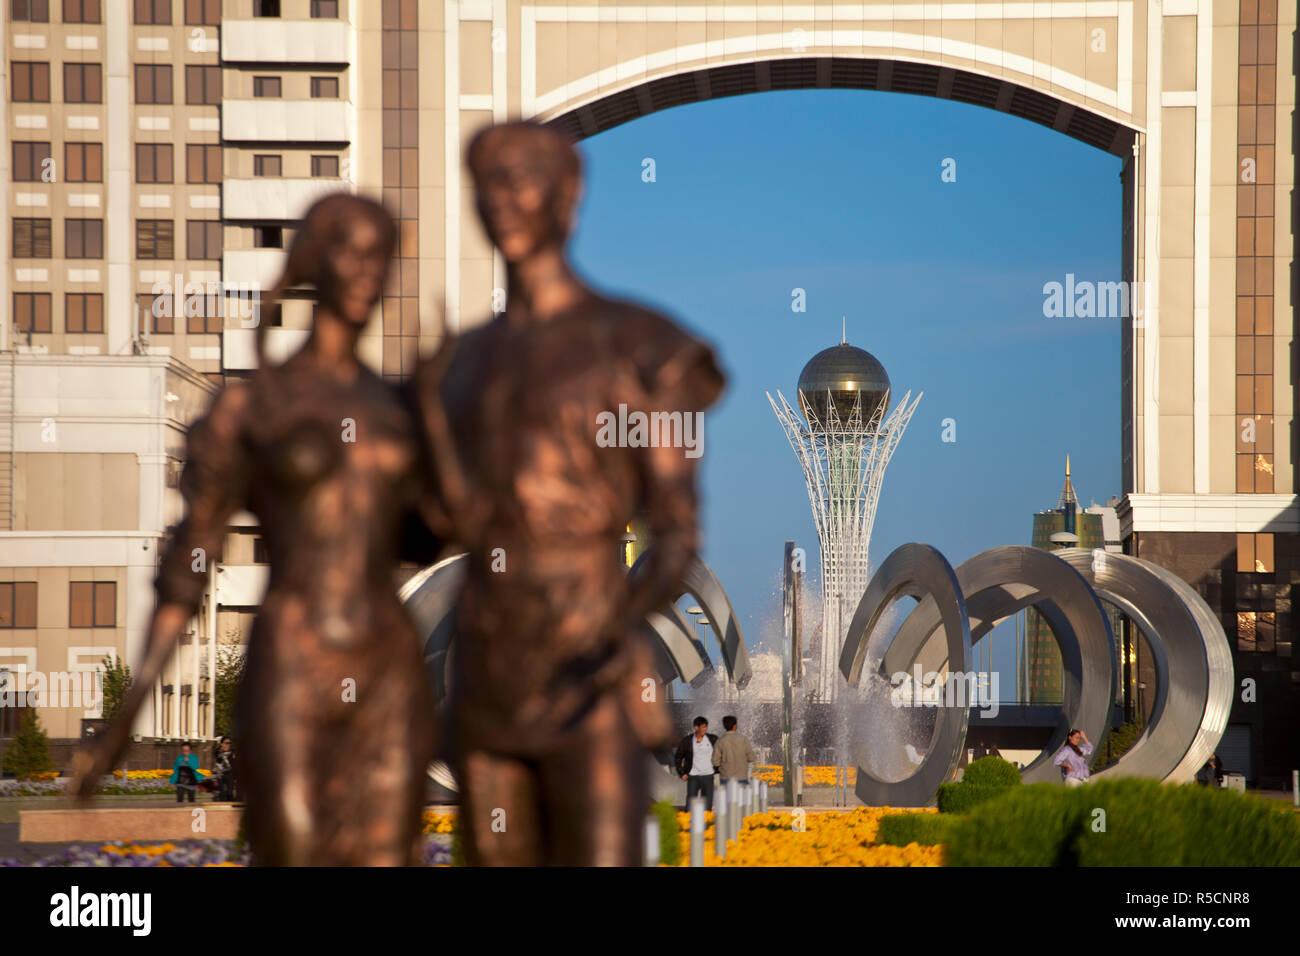 Kazakhstan, Astana, Statue infront of KazMunaiGas building home to the Oil and Gas Ministry, with Bayterek Tower in background Stock Photo